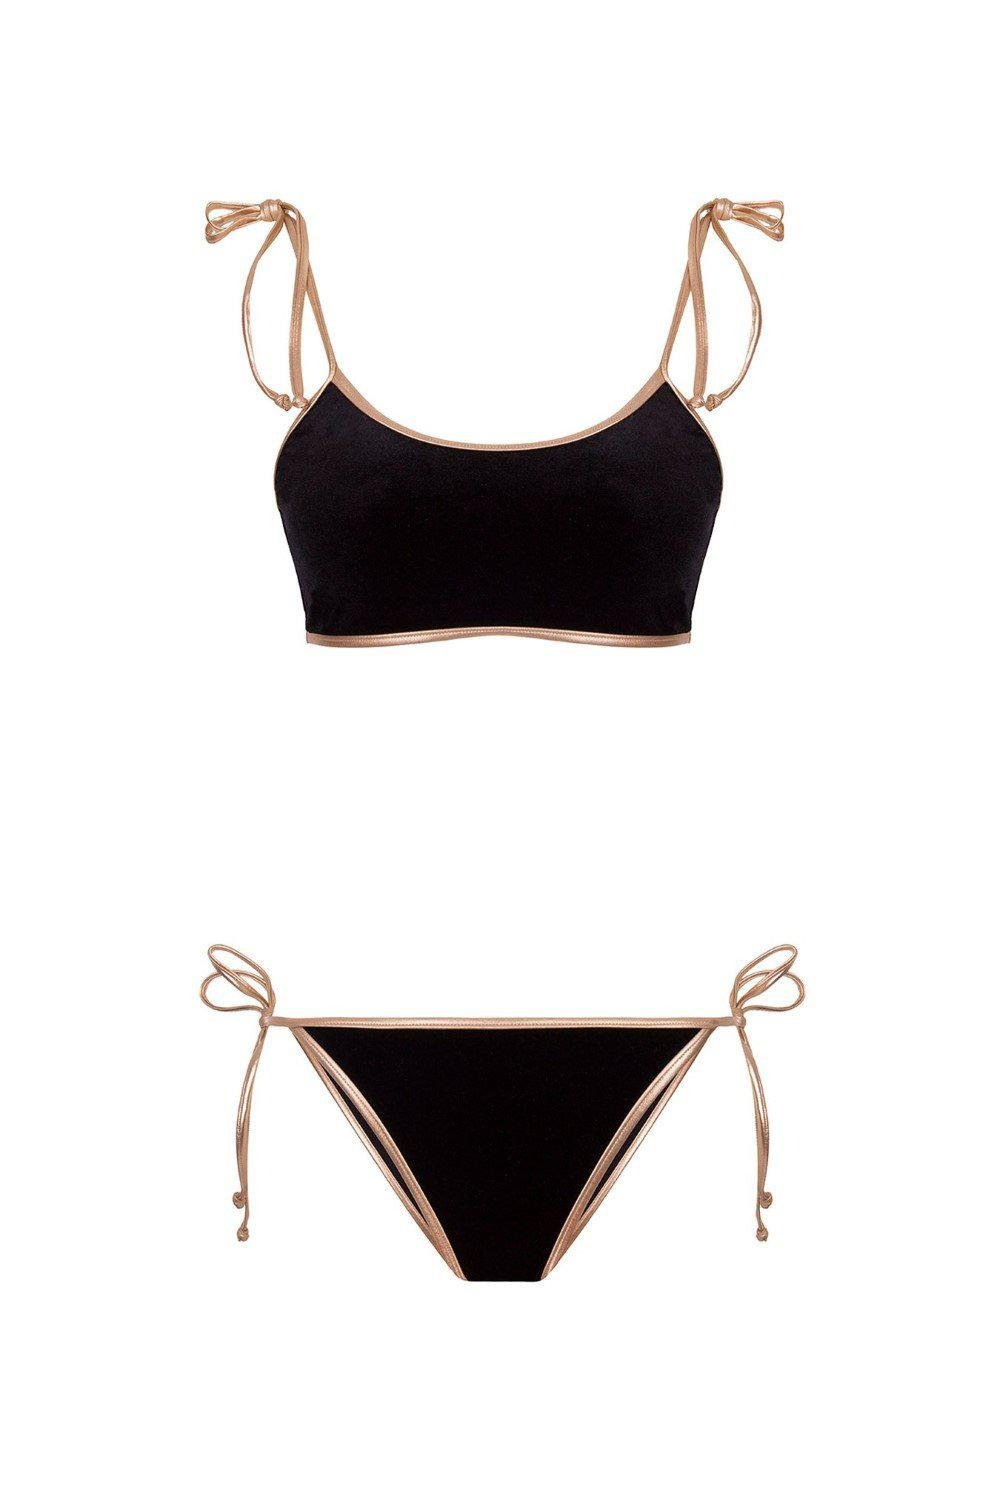 Cavaliere Velvet Bikini with Straps and Gold Detail 1